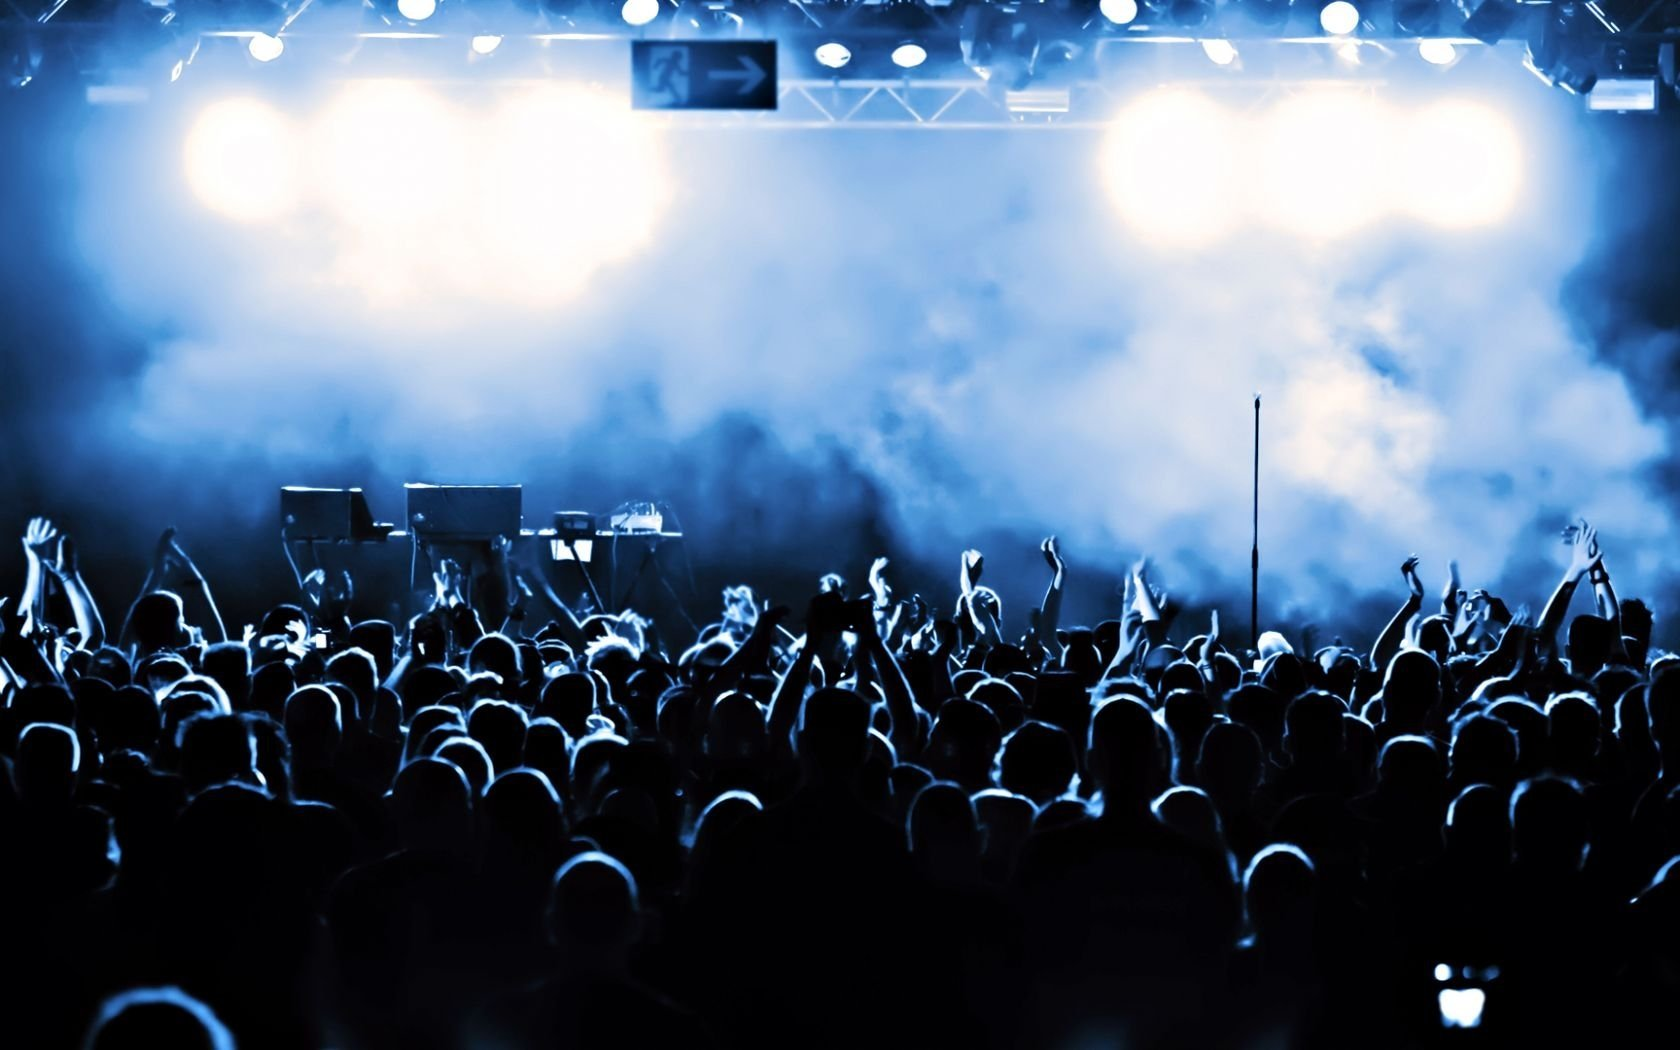 Concert wallpaper and background image 1680x1050 id 151409 - Concert crowd wallpaper ...